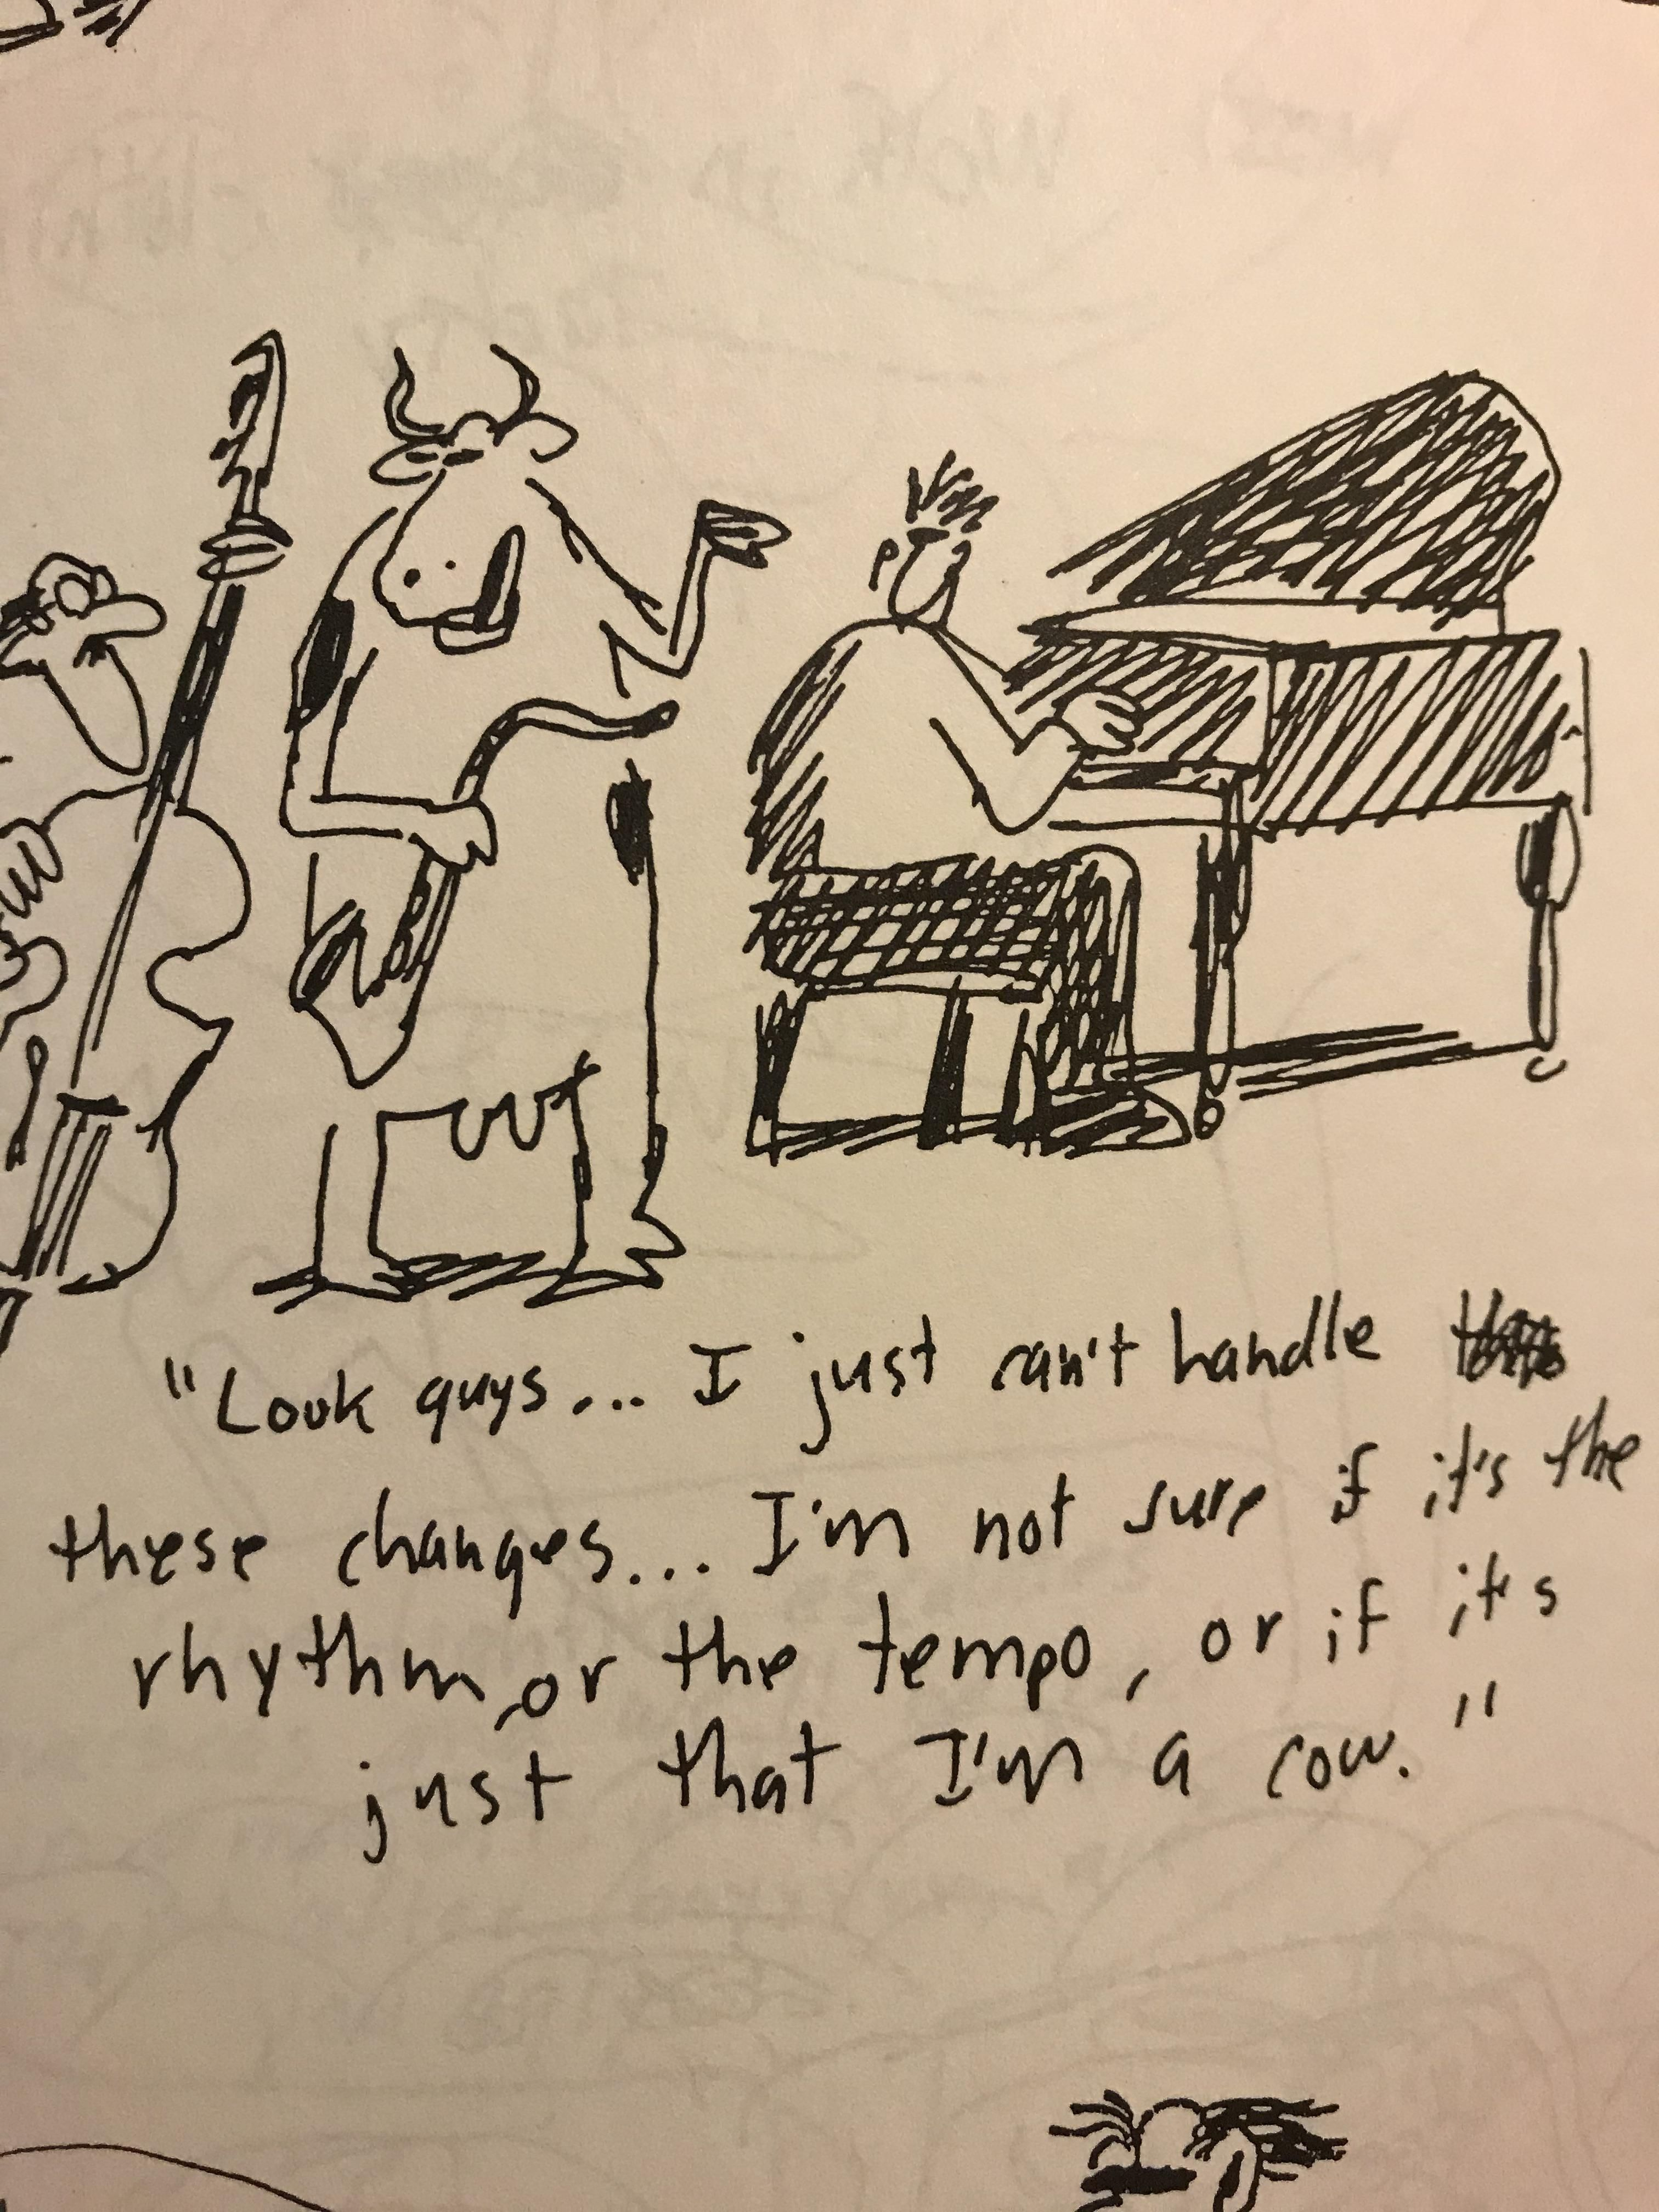 From an unpublished Gary Larson cartoon